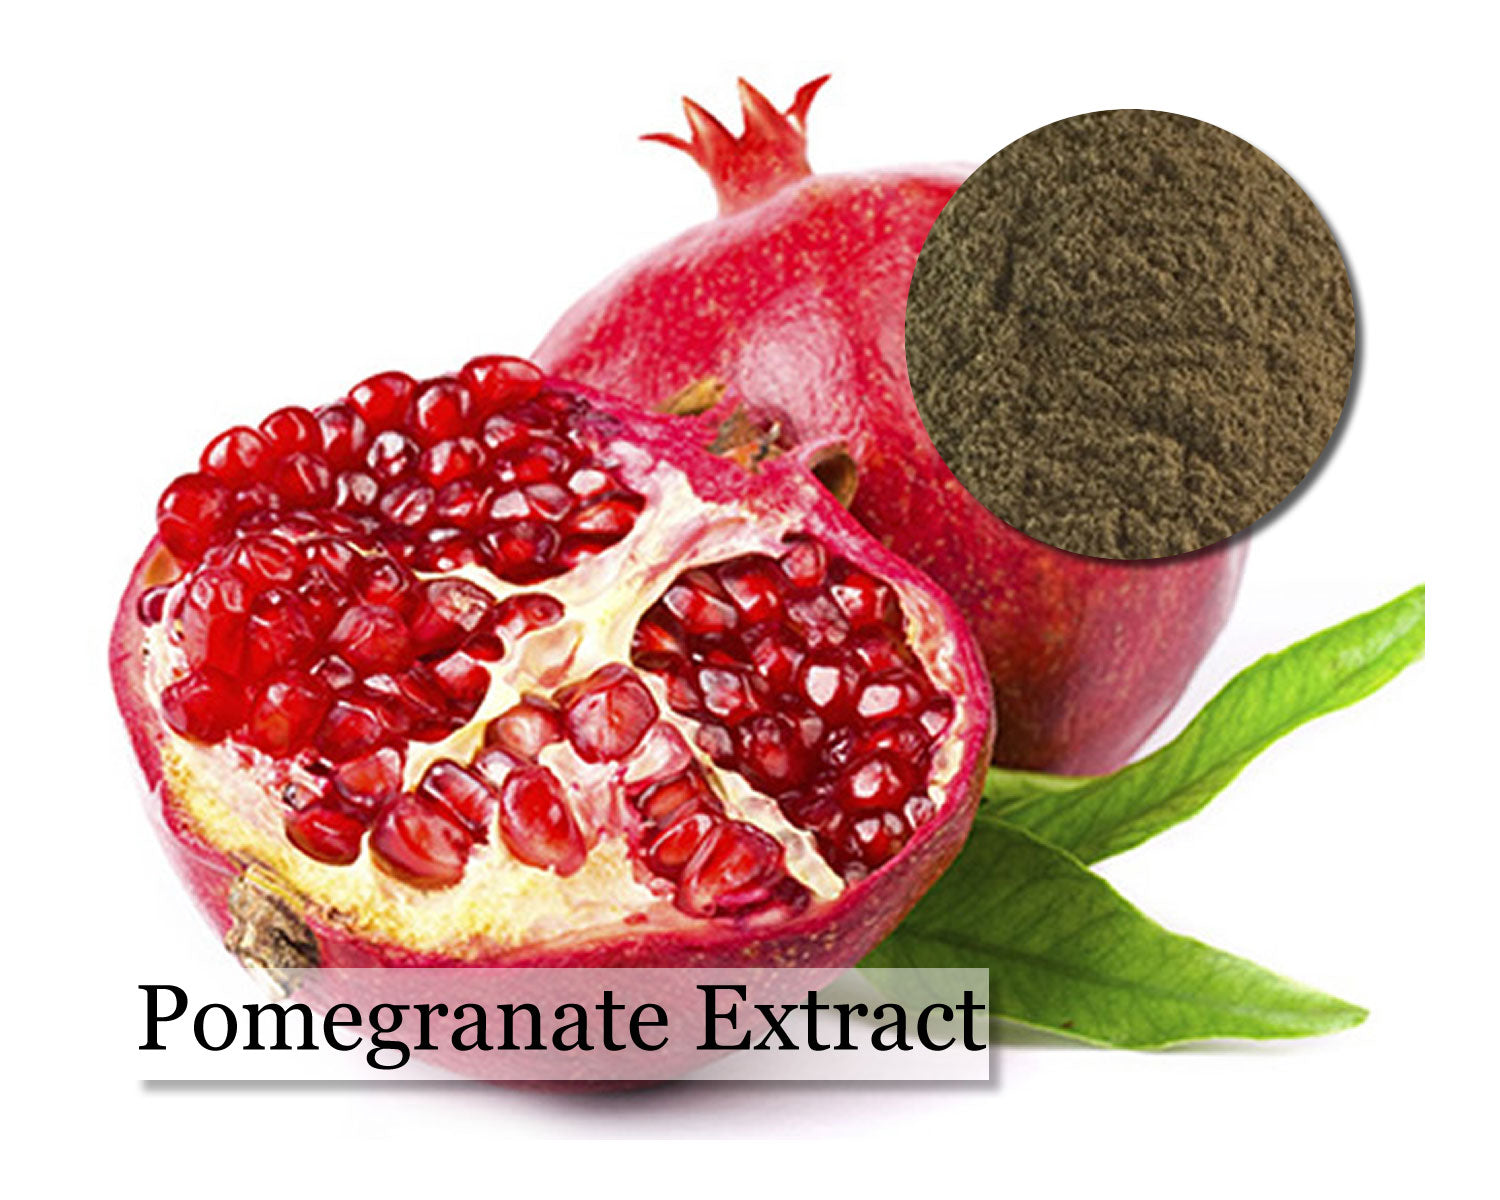 Pomegranate Extract - 2 oz